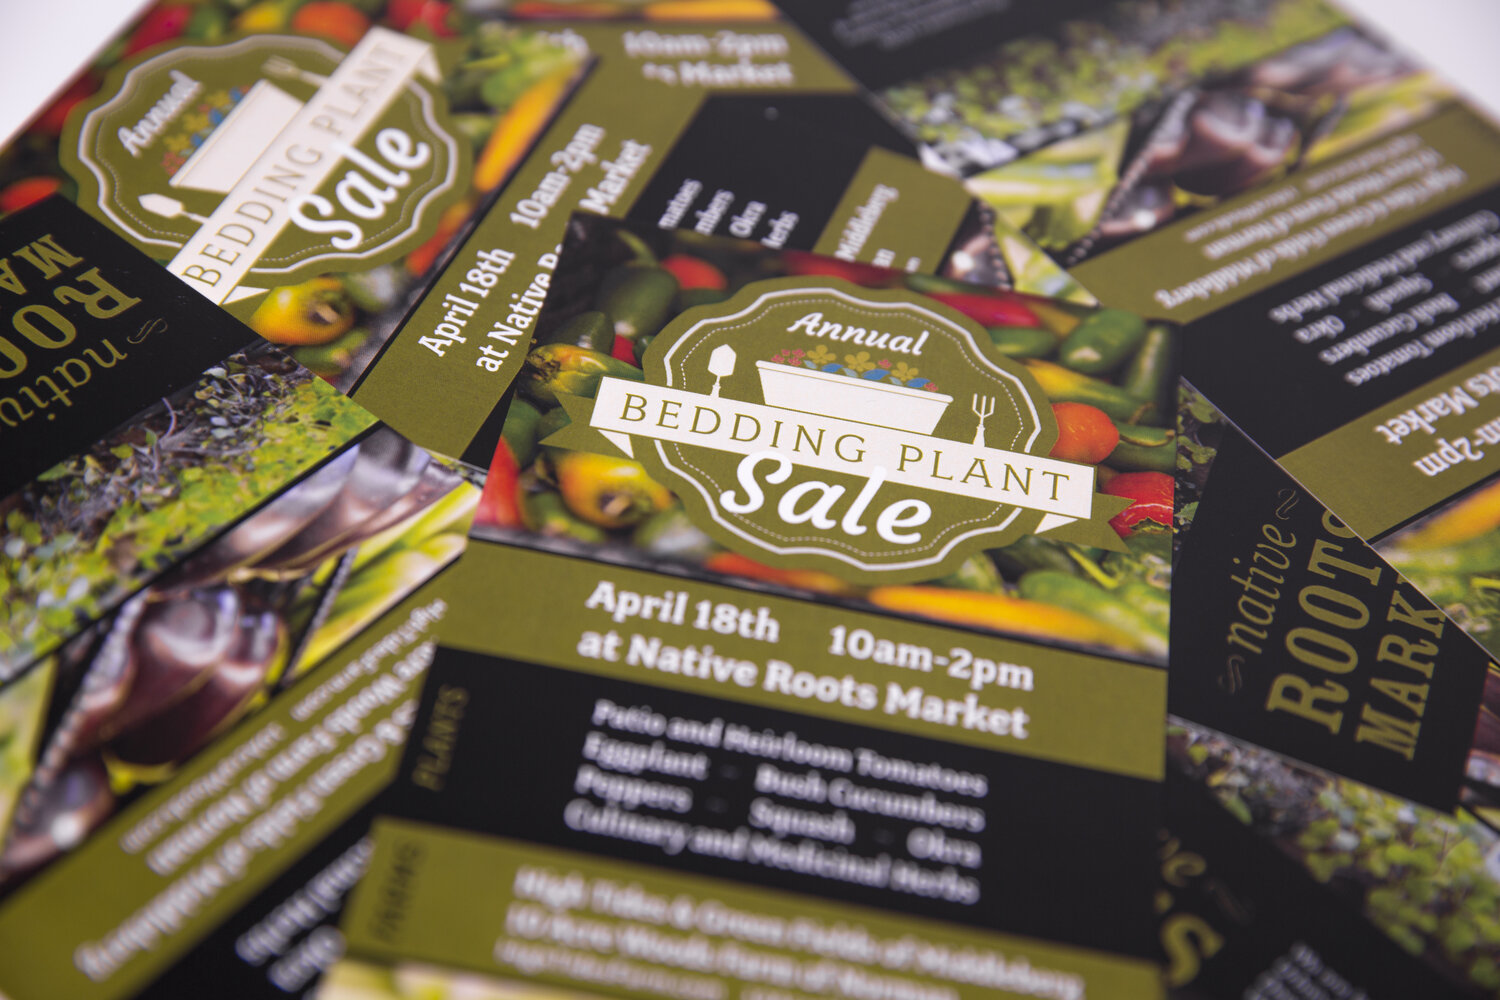 Native Roots | Bedding Plant Sale Event Branding + Flyer Design